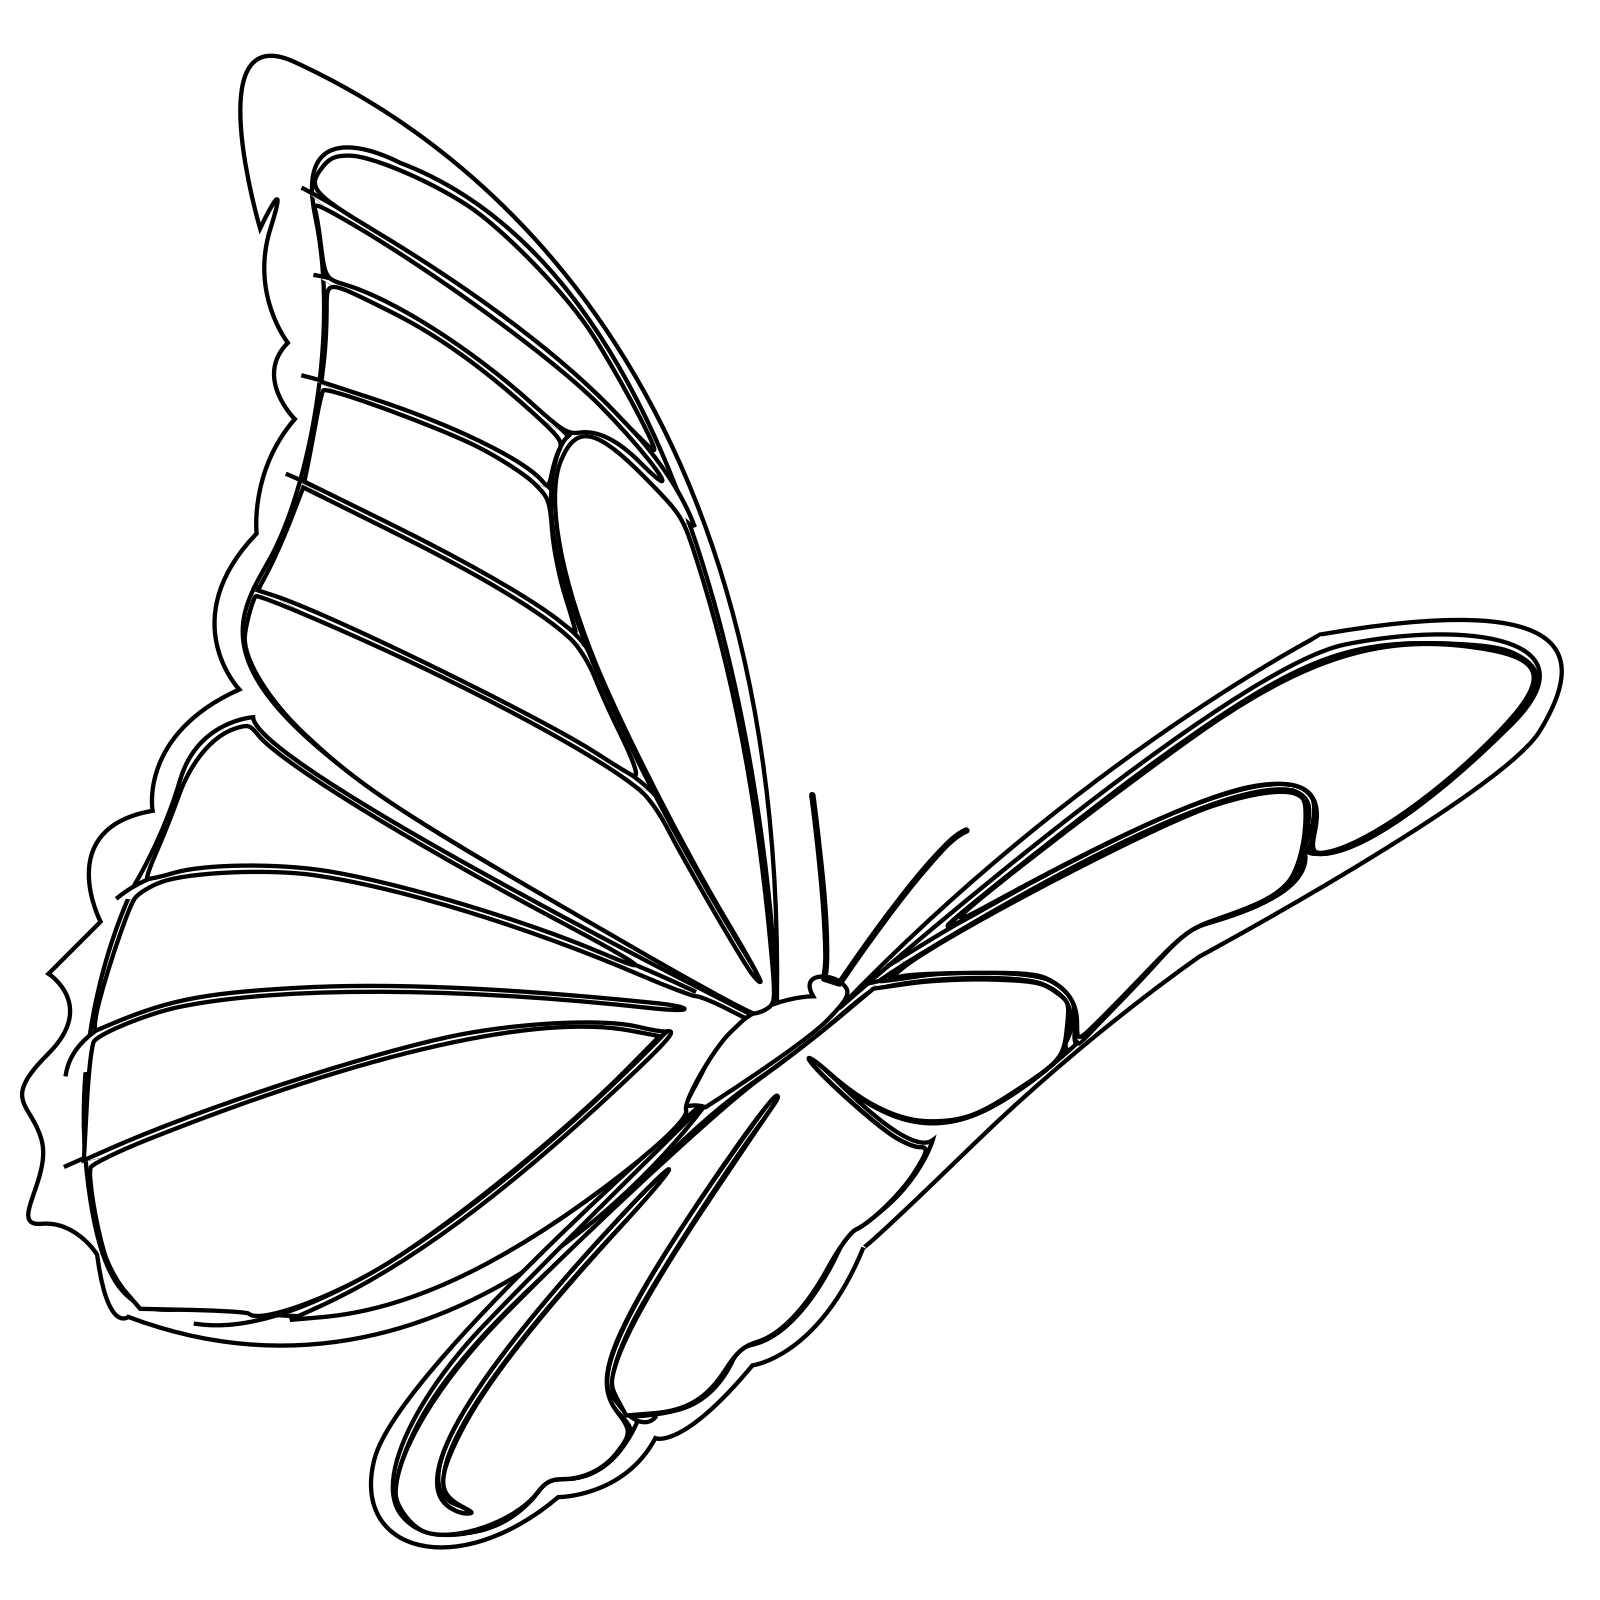 Butterfly outline flying. Clip art icon and